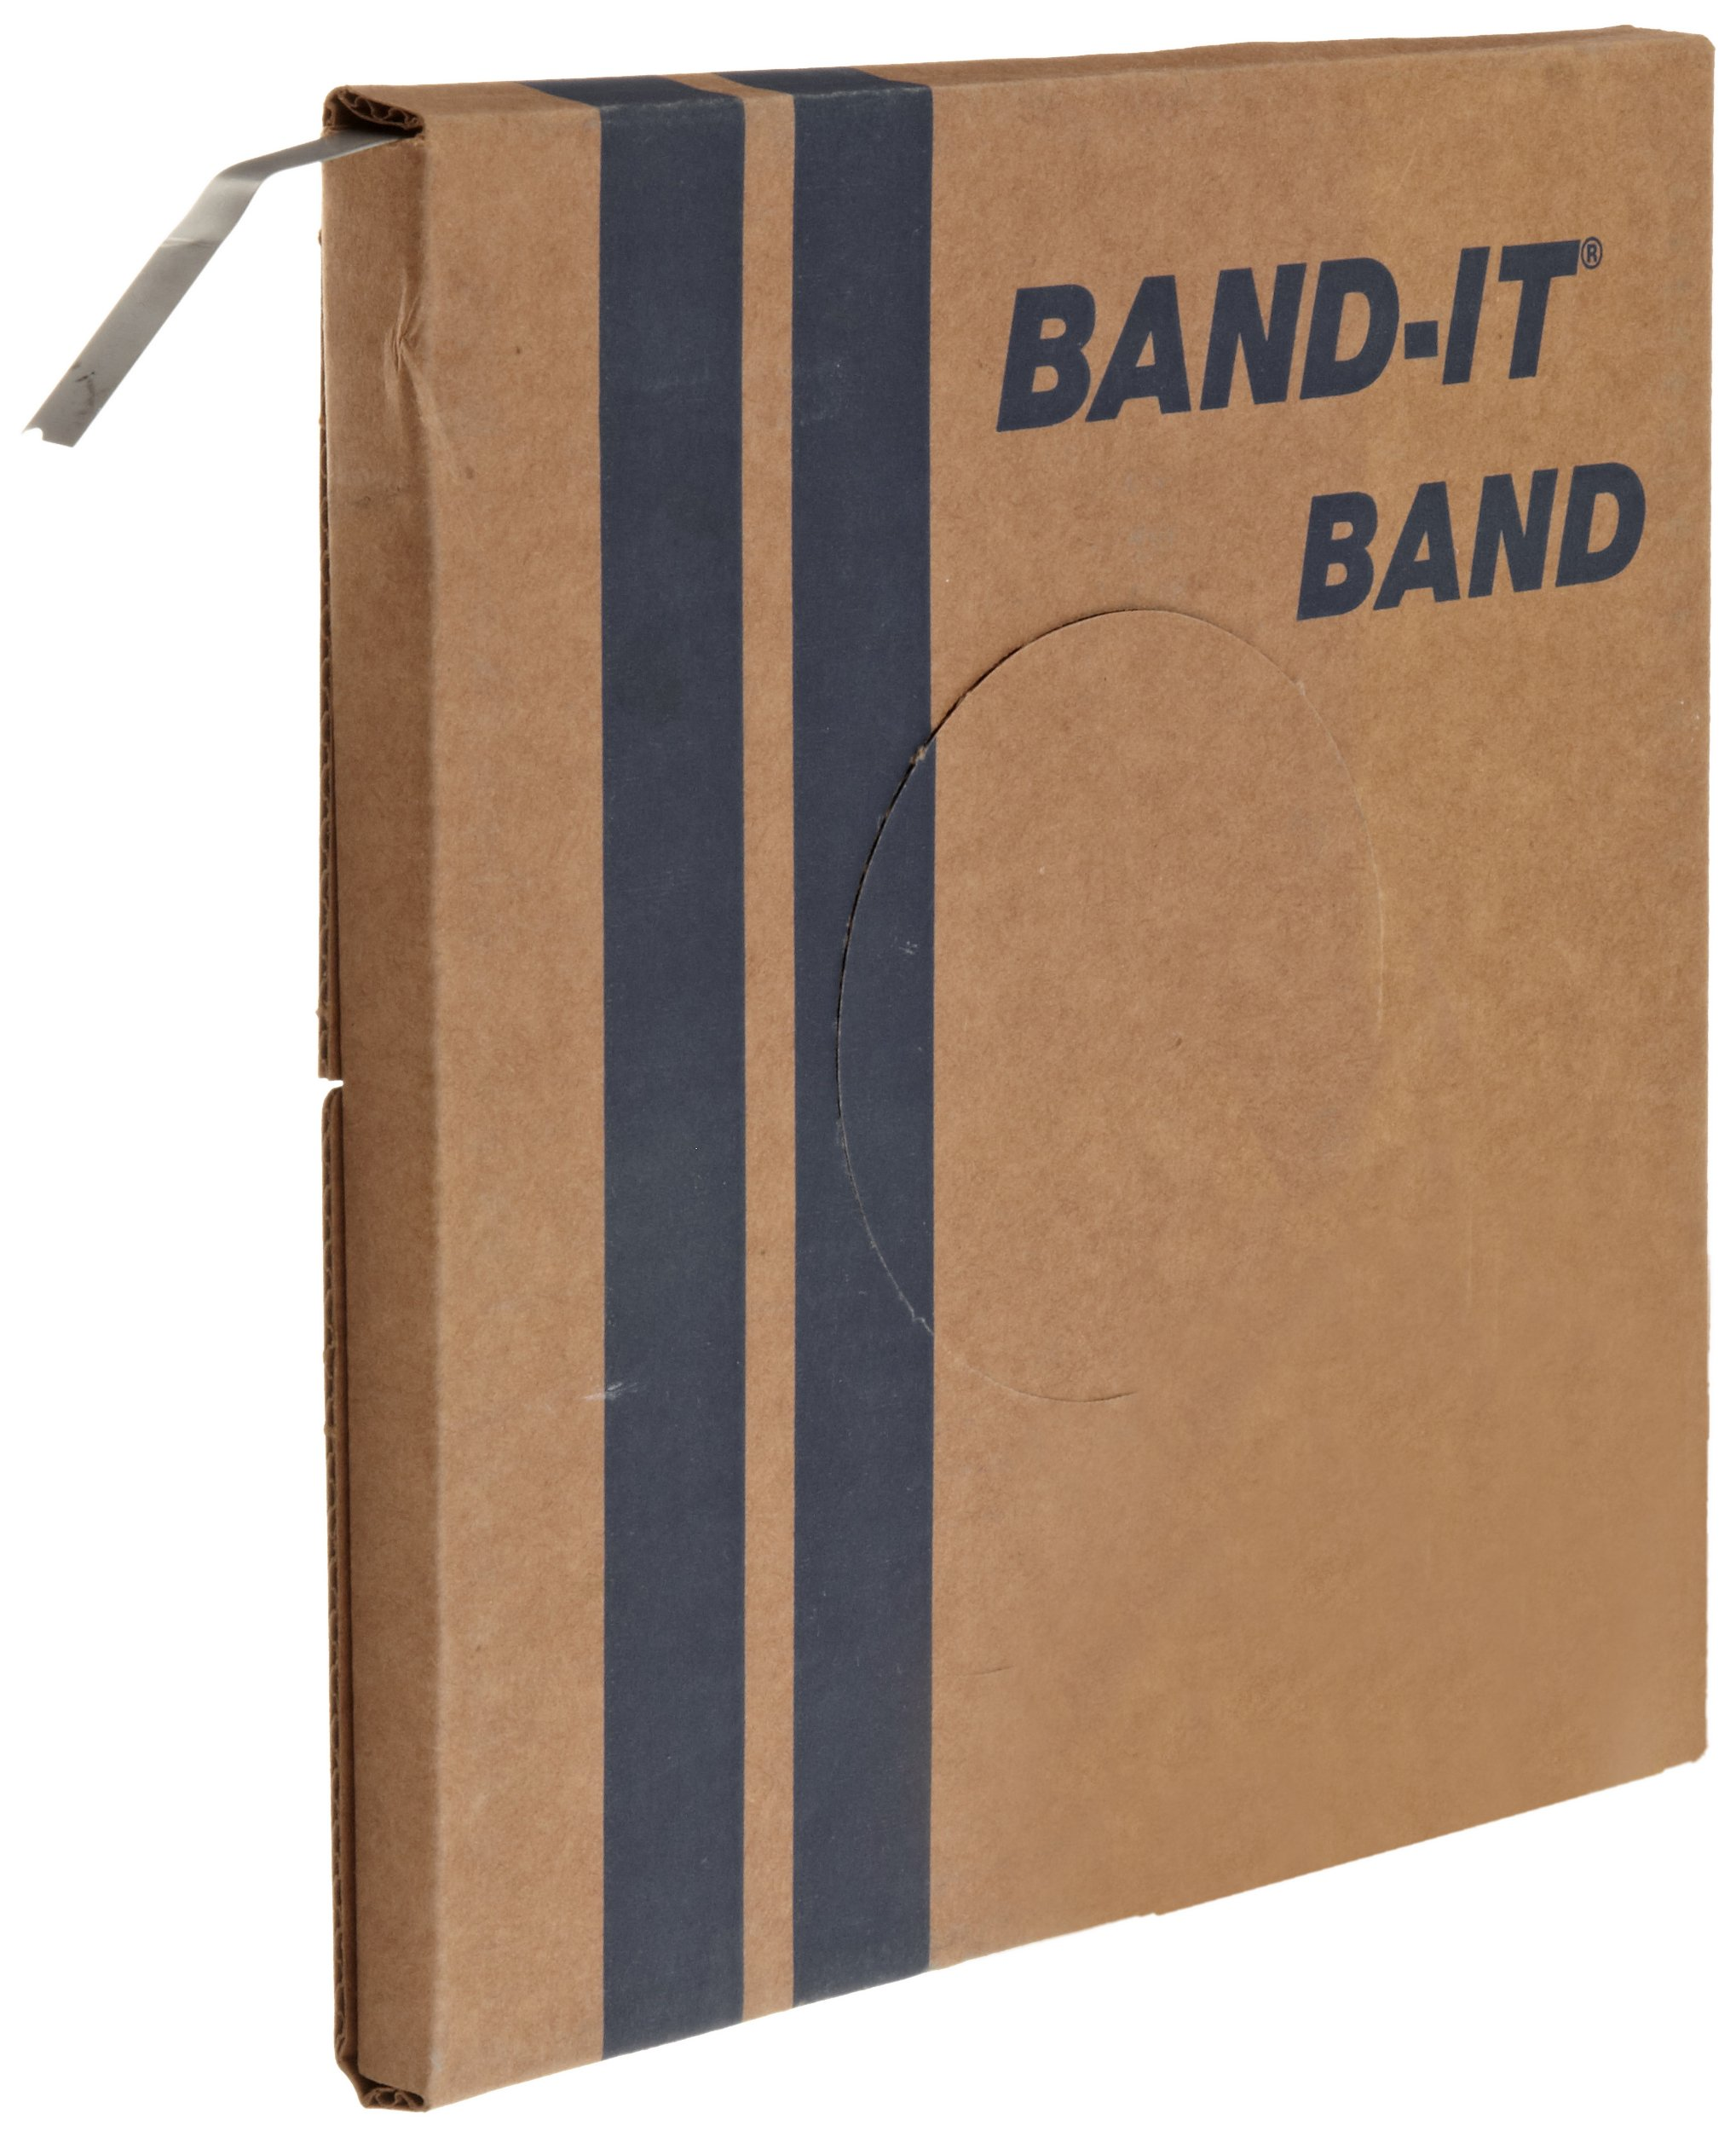 BAND-IT VALU-Strap Band C13399, 200/300 Stainless Steel, 3/8'' Wide x 0.015'' Thick (100 Foot Roll) by Band-It